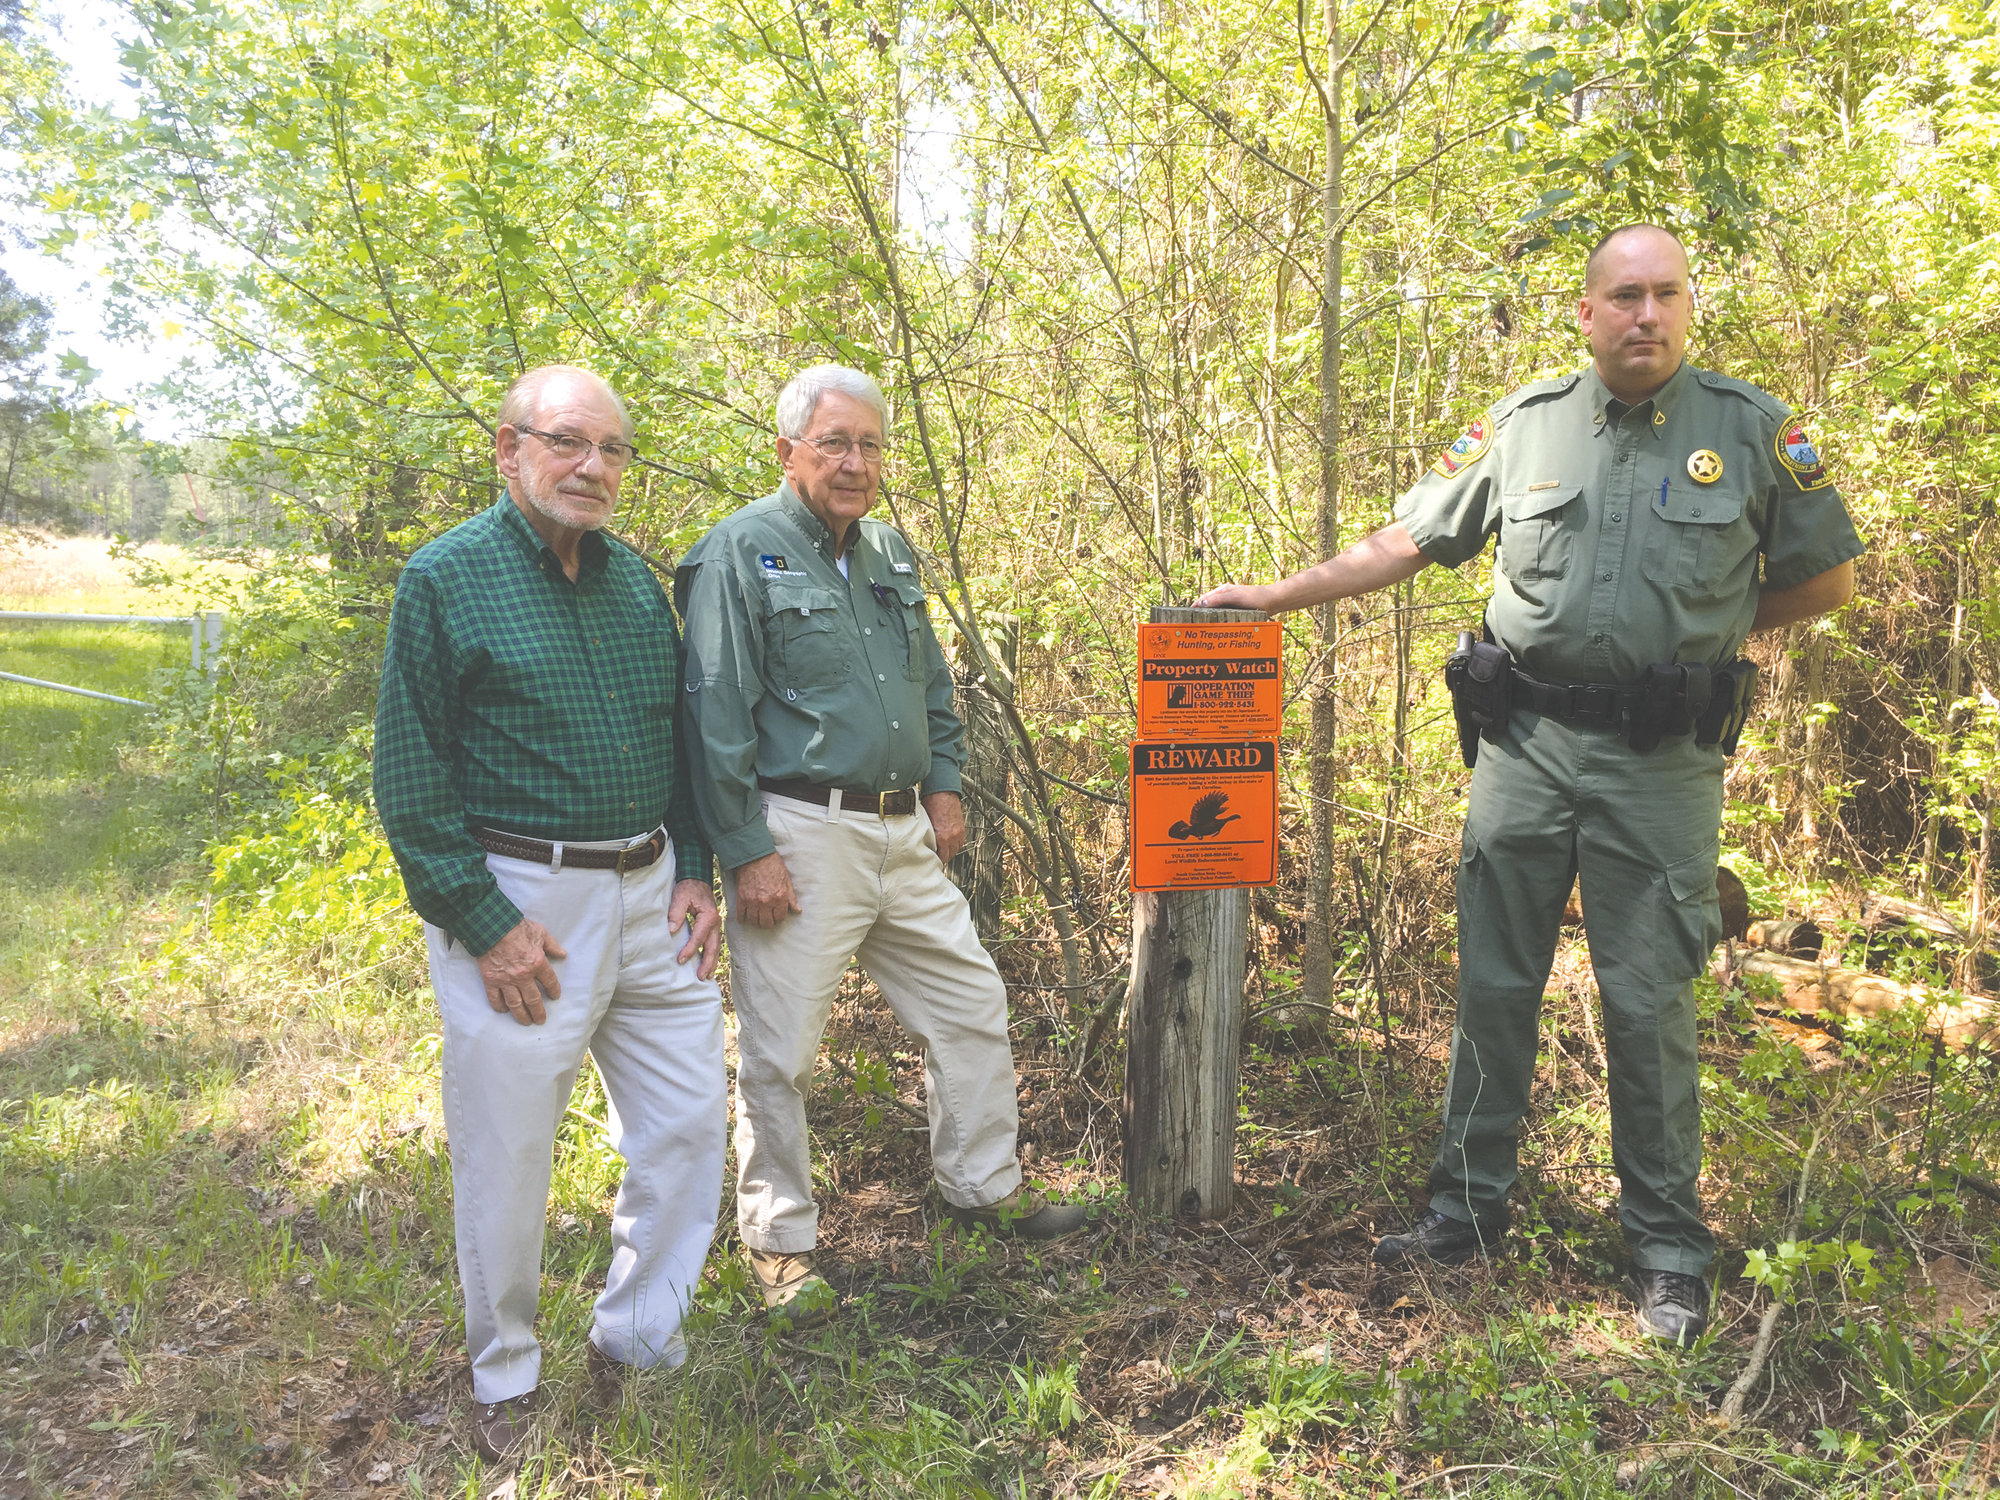 Landowners Marvin Davant, Hugh Ryan and SCDNR Officer Ed Laney are seen at the posted entrance to a rural property.